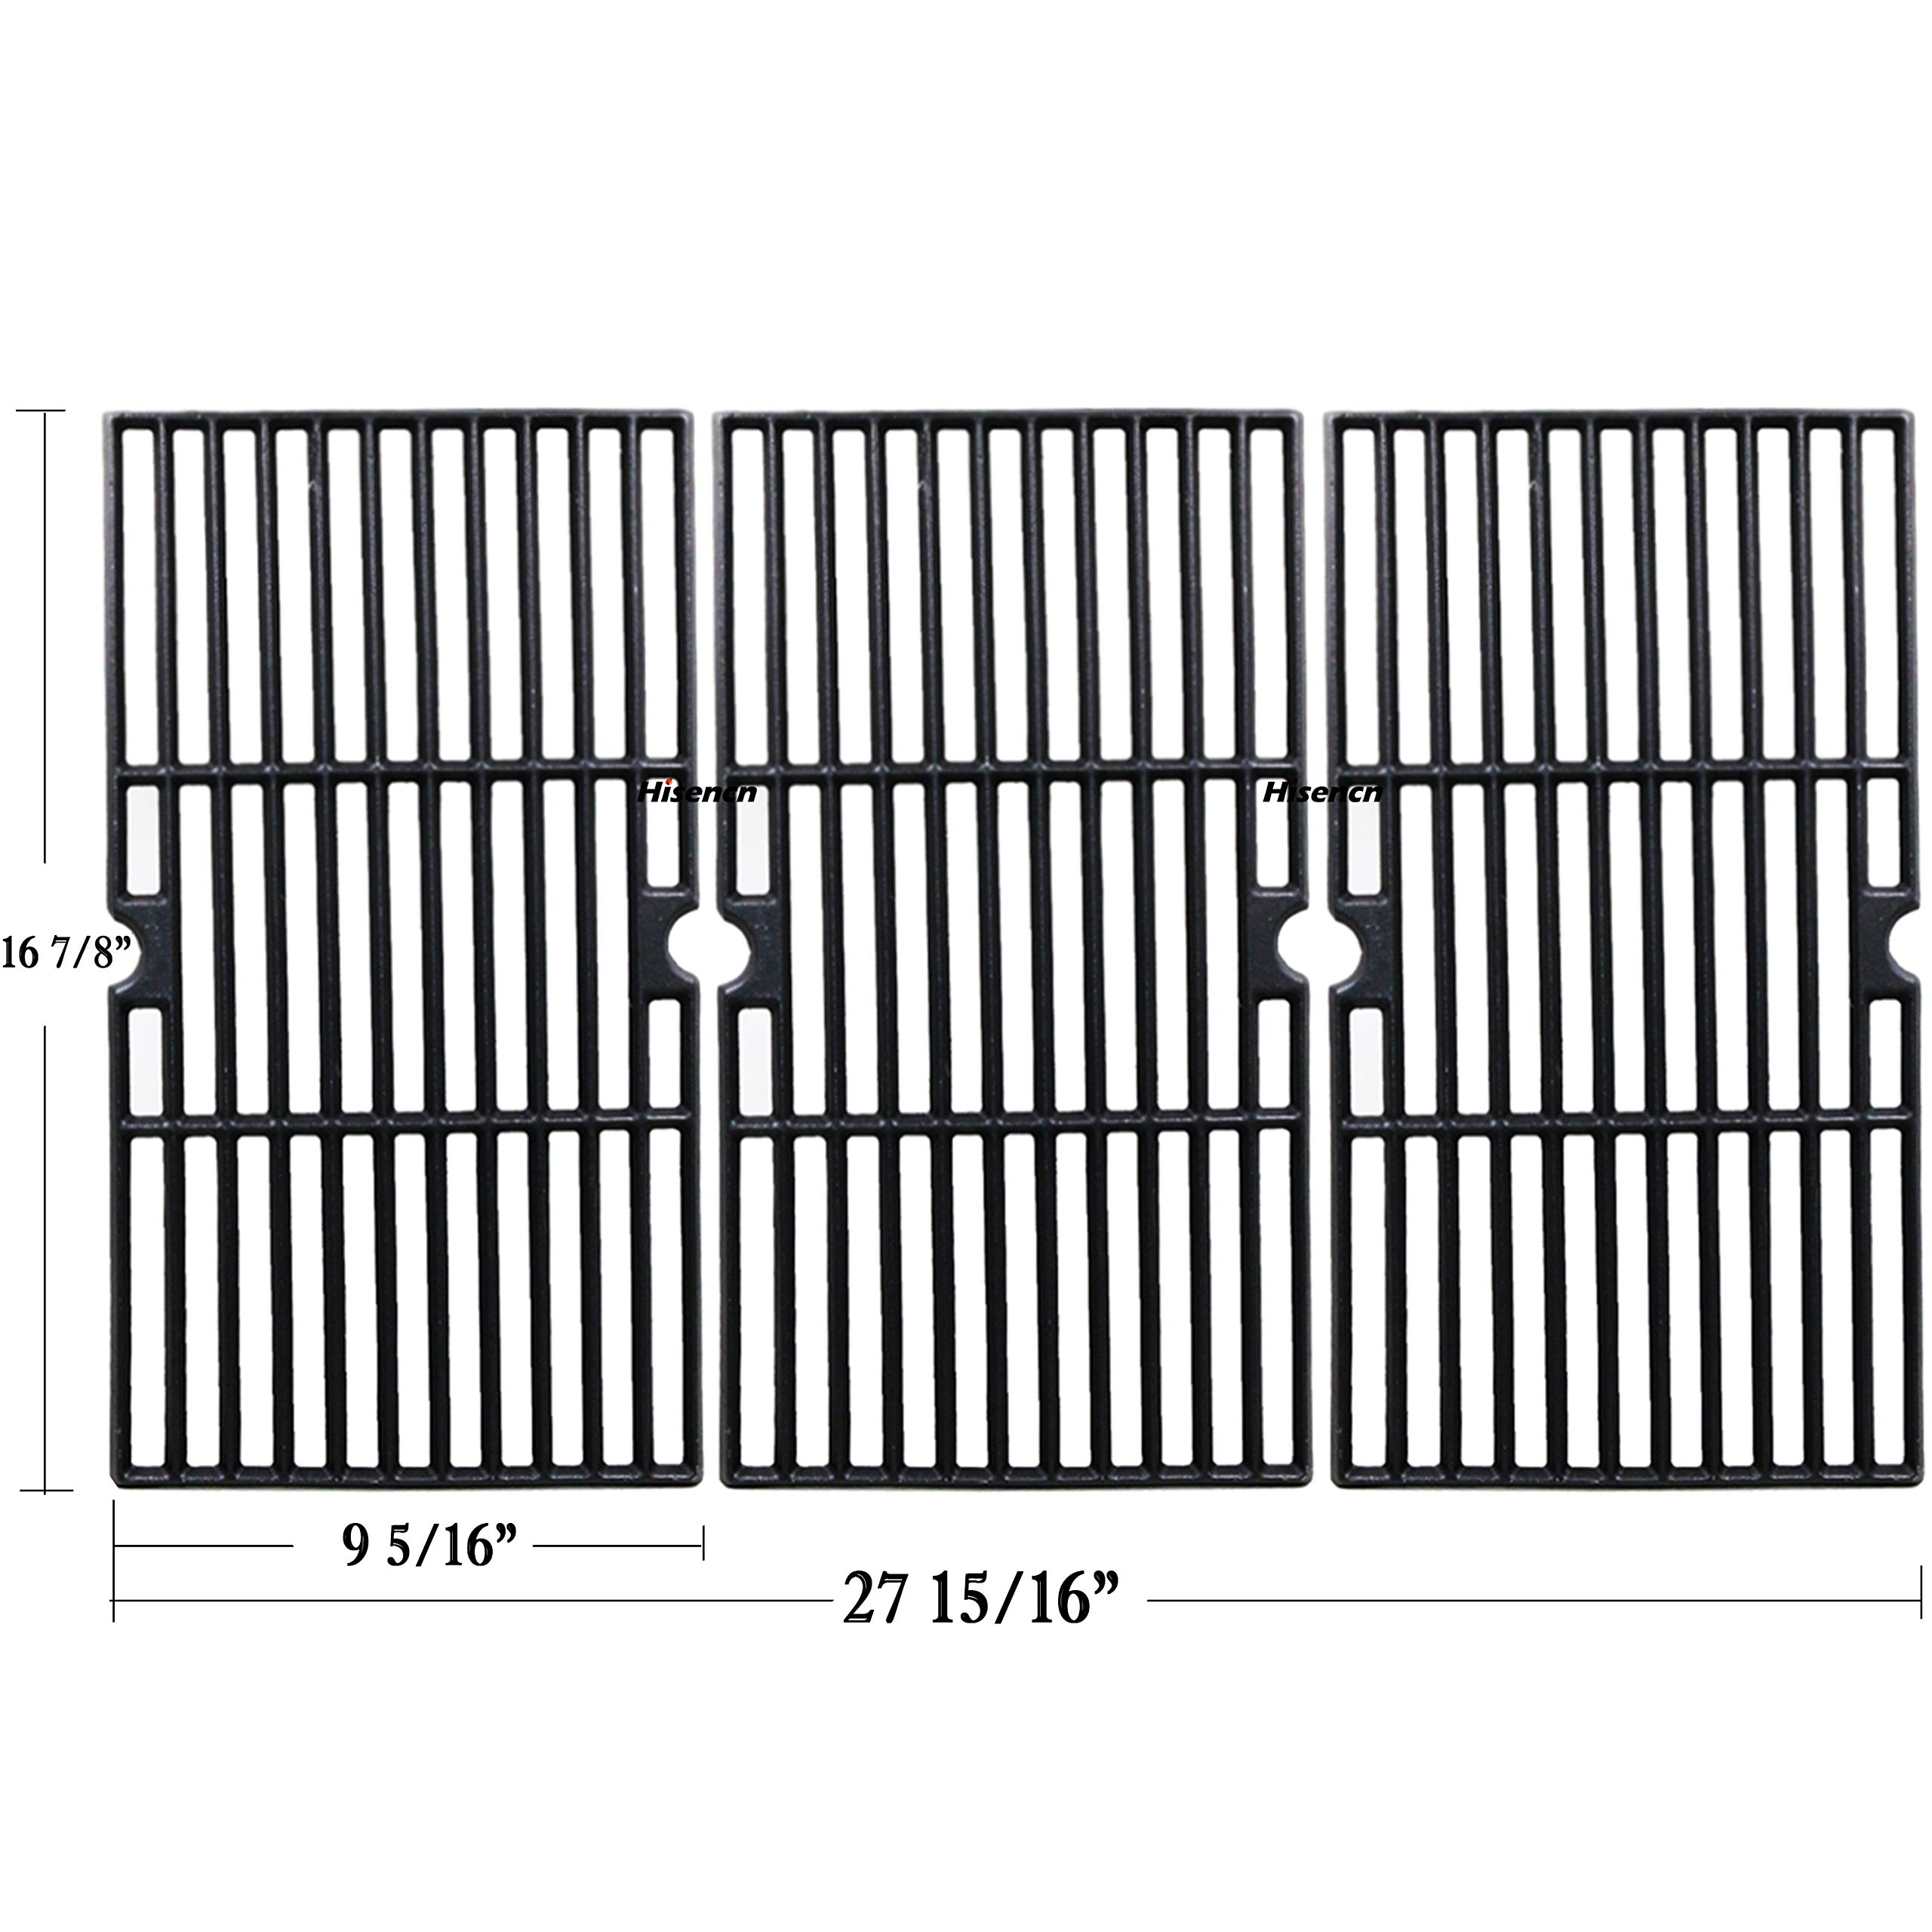 Hisencn 16 7/8'' Cast Iron Grill Cooking Grid Grate Replacement Part for Charbroil 463436213, 463436214, 463436215, 463420508, 463420509, 463440109, 463441312, 463441514, Thermos 461442114, 16 7/8 inch by Hisencn